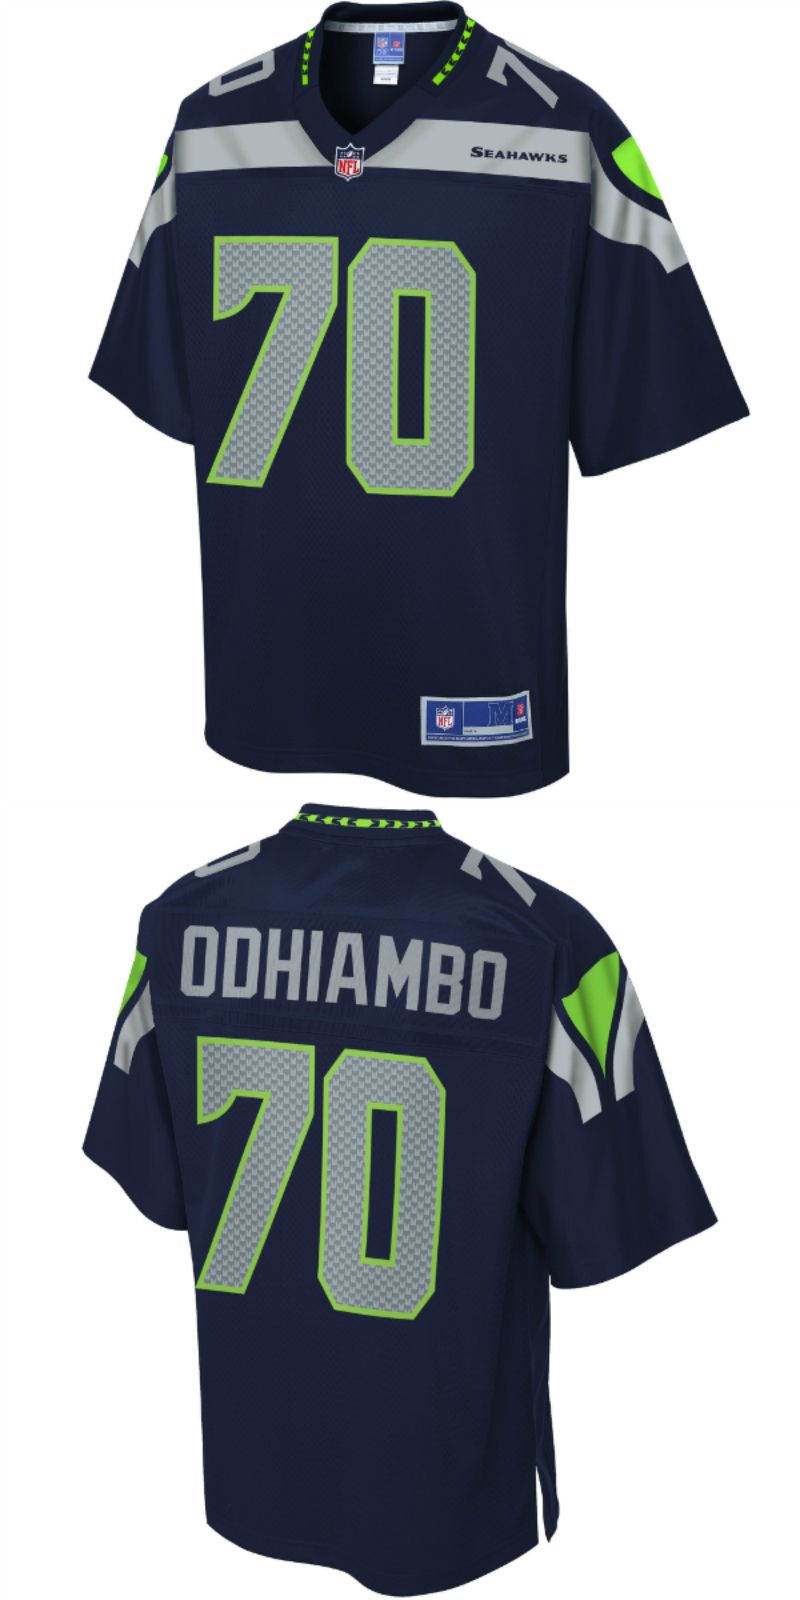 competitive price 423e5 b624f UP TO 70% OFF. Rees Odhiambo Seattle Seahawks NFL Pro Line ...